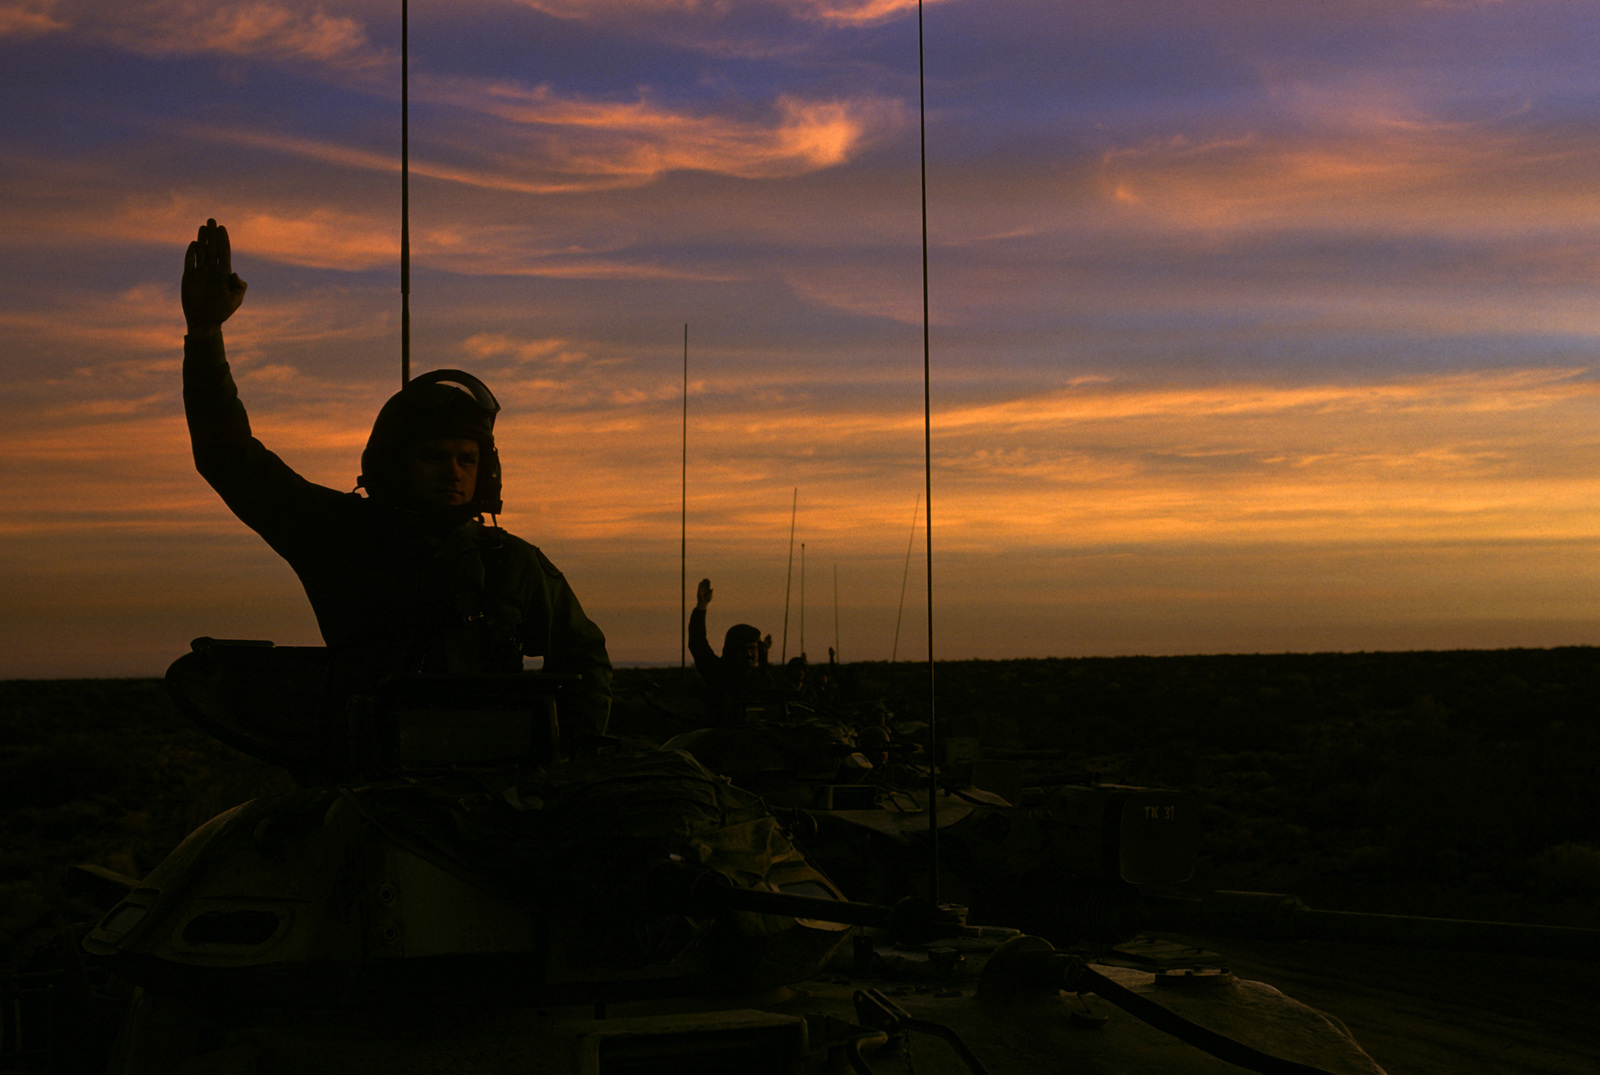 US Army soldiers give hand signals from the turrets of their M60 main battle tanks at dusk during a field training exercise